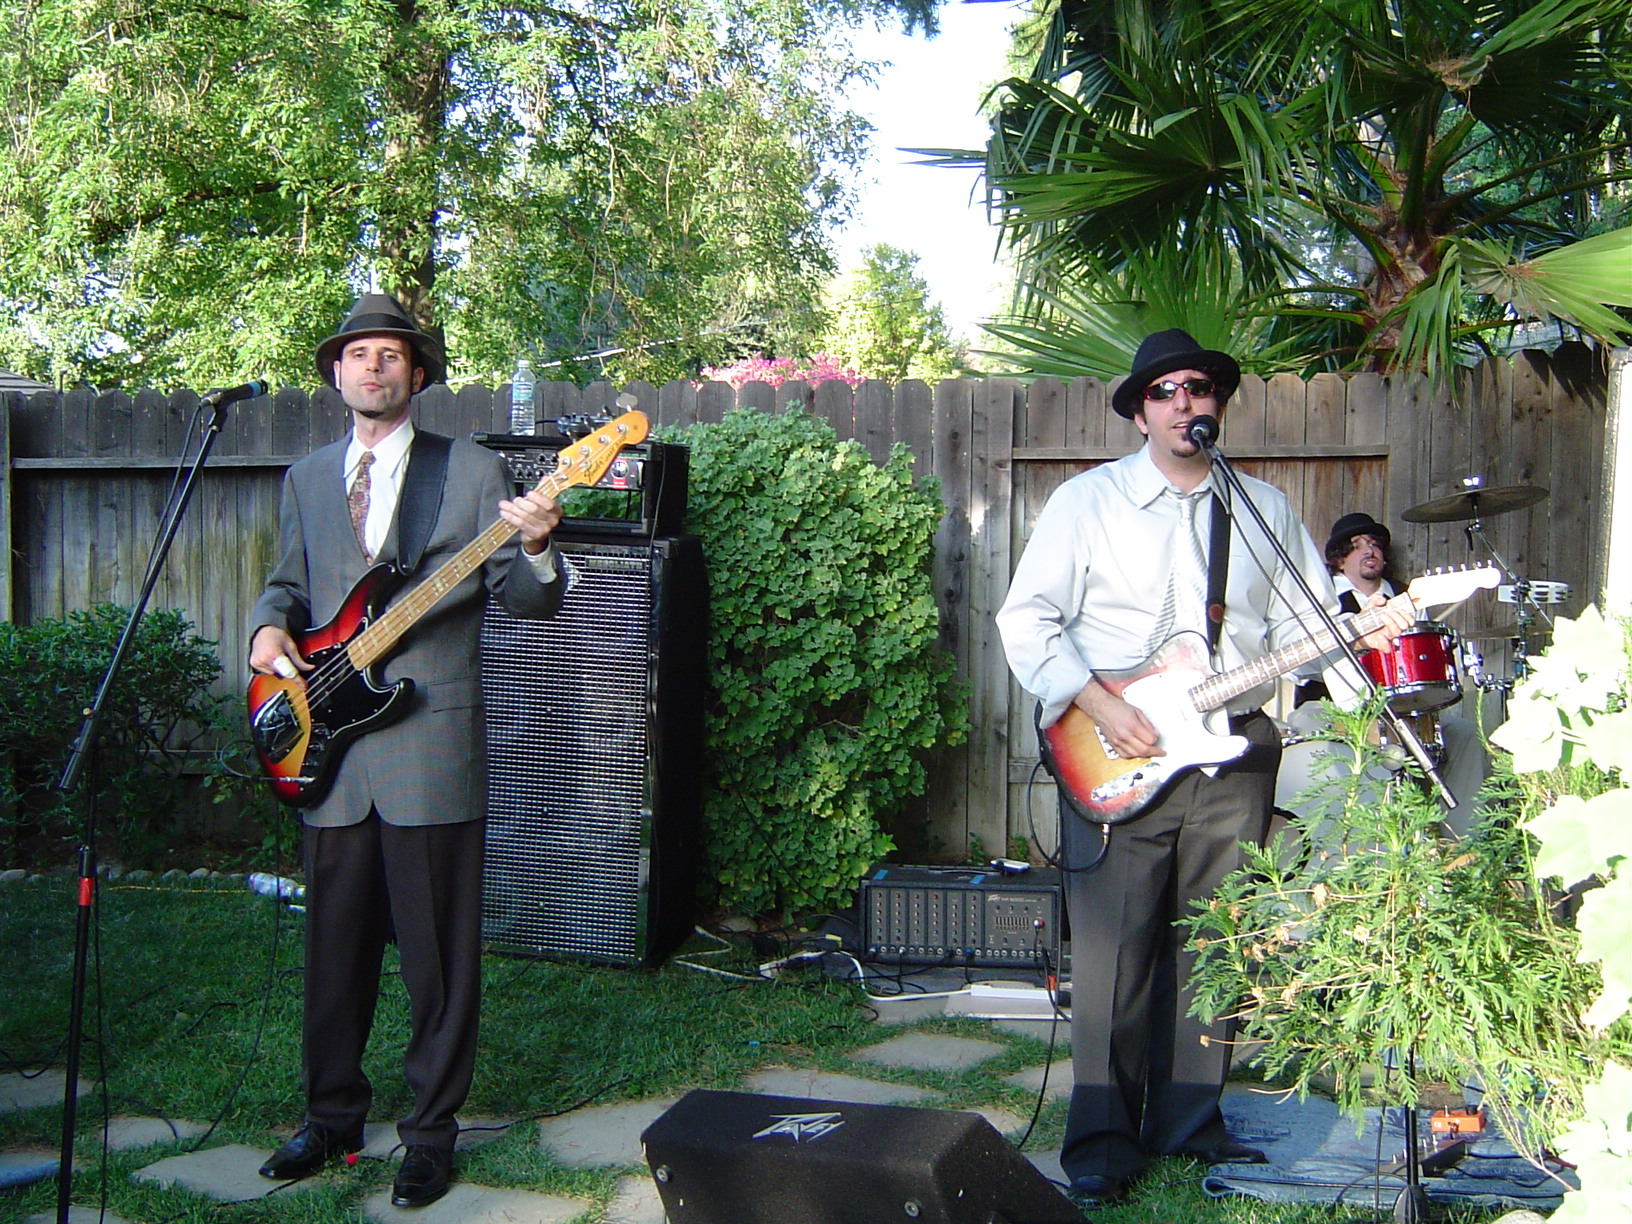 The band in a backyard